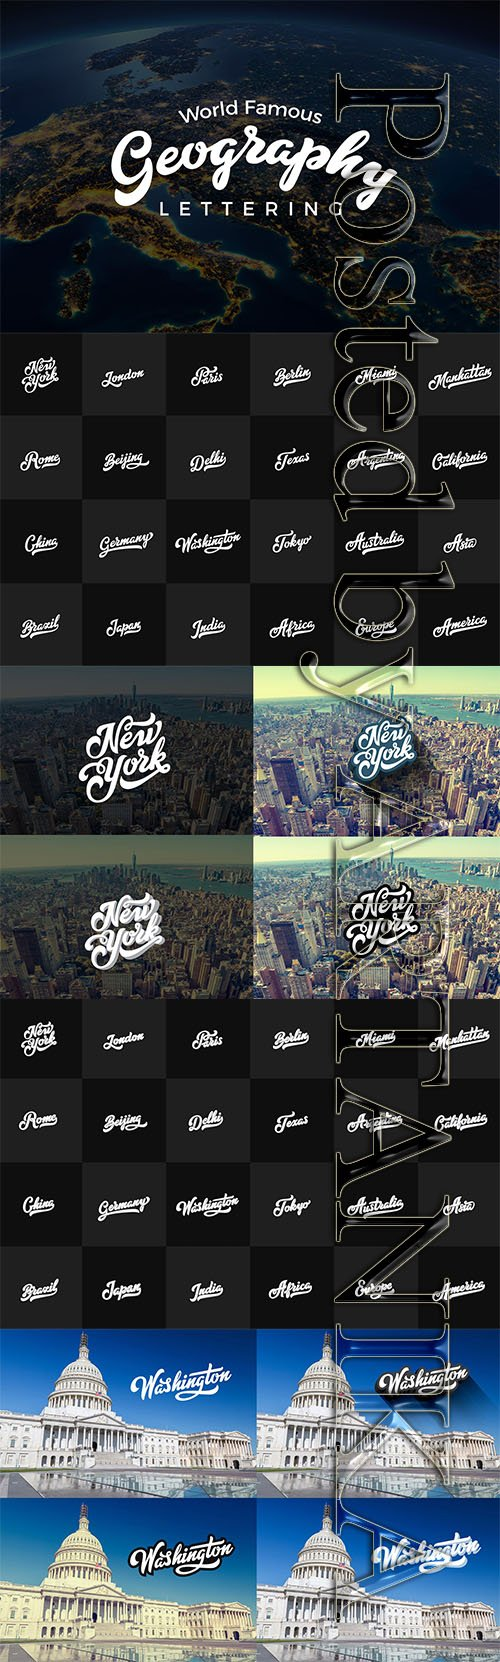 Geographic Lettering Vector Collection